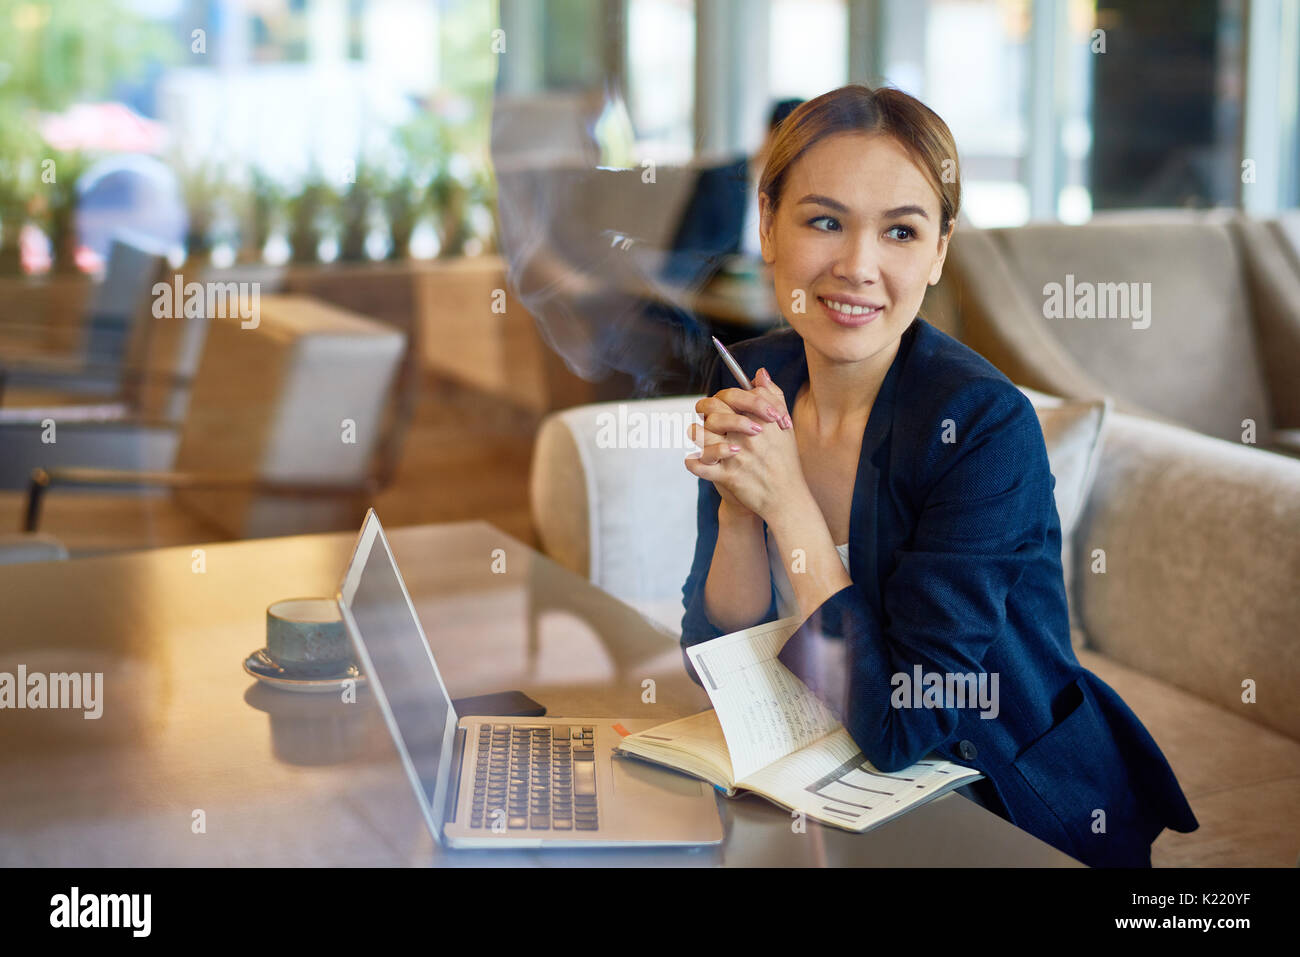 Asian Entrepreneur Working at Cafe - Stock Image